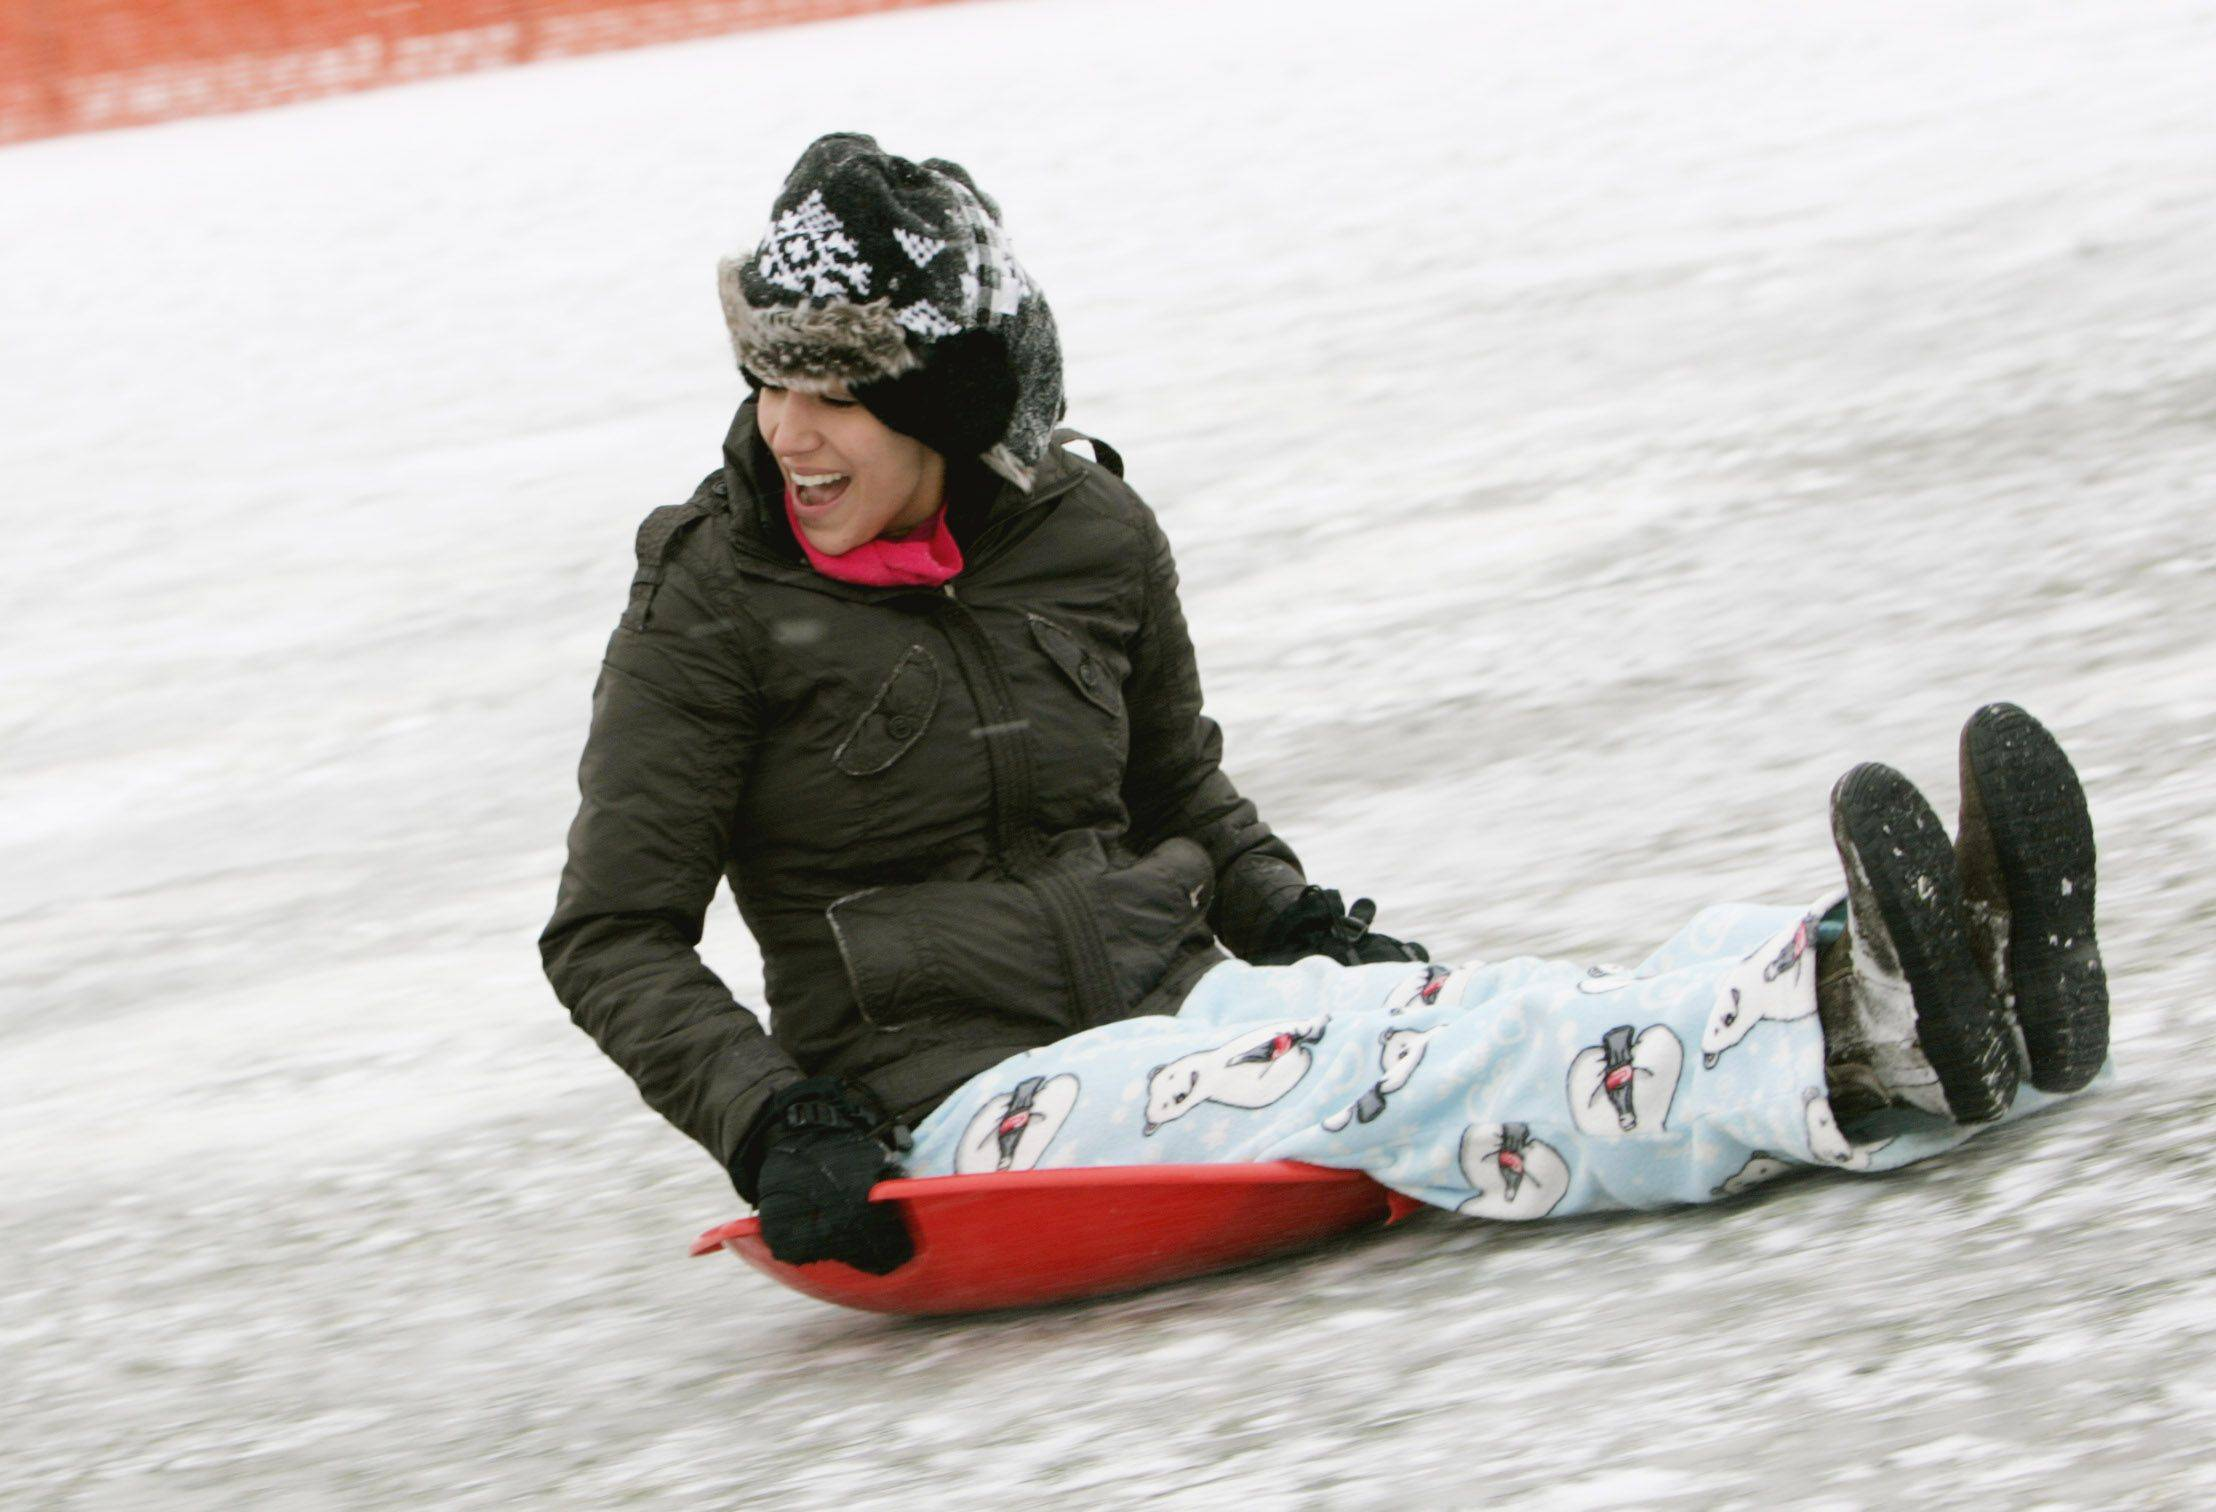 Kerry Novick, who is in town from Florida to visit her family in Naperville, sleds down a hill at Rotary Hill in Naperville.